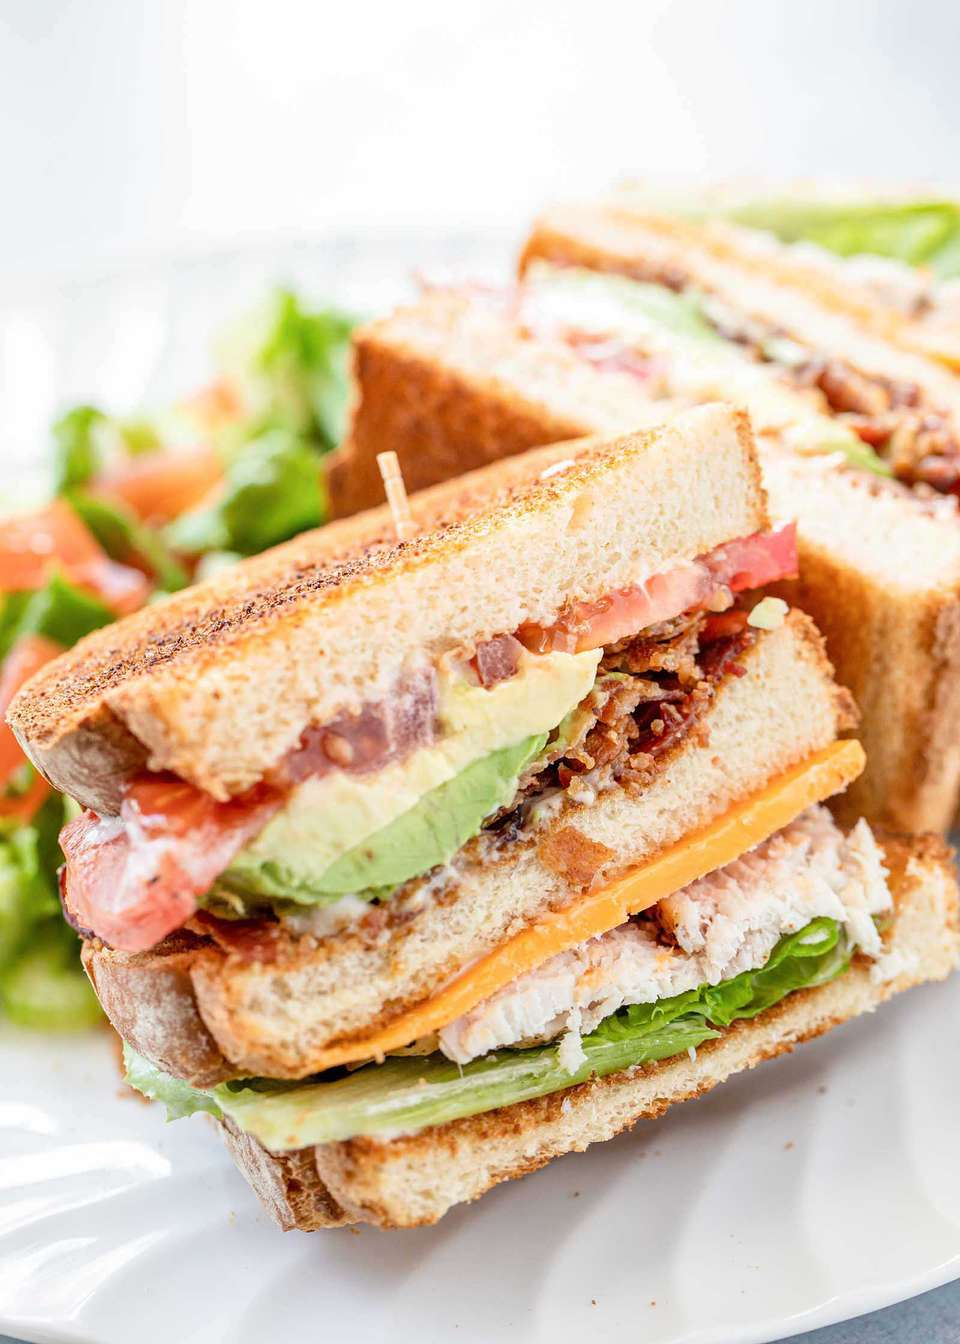 Side view of turkey club with garlic mayo on a plate. The bread is toasted and the mayo, avocado, bacon, tomato, lettuce and turkey are visible in the sandwich. A second half of the sandwich is behind the first.